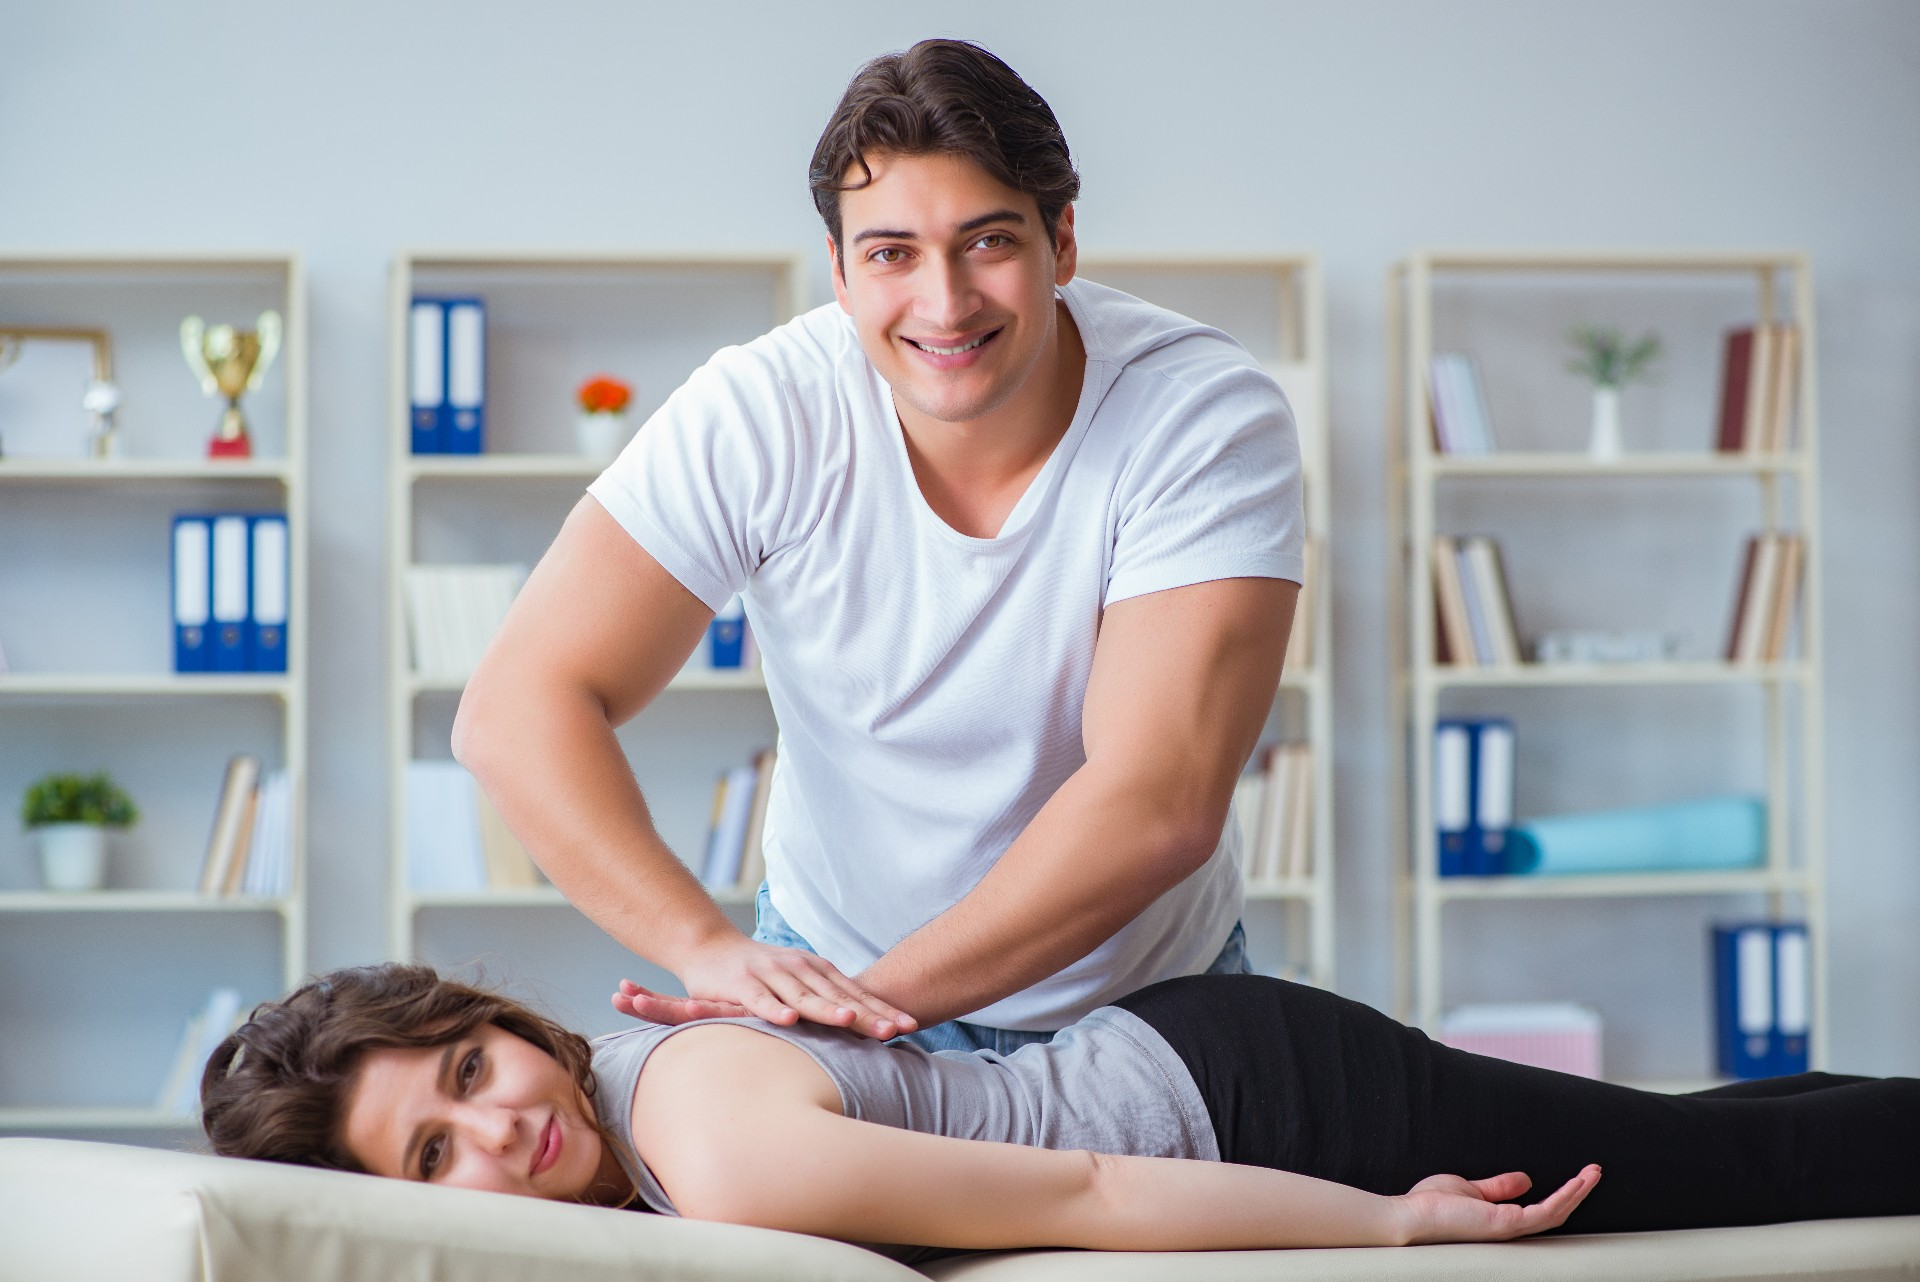 6 Reasons Why You Should Be Visiting the Chiropractor Regularly